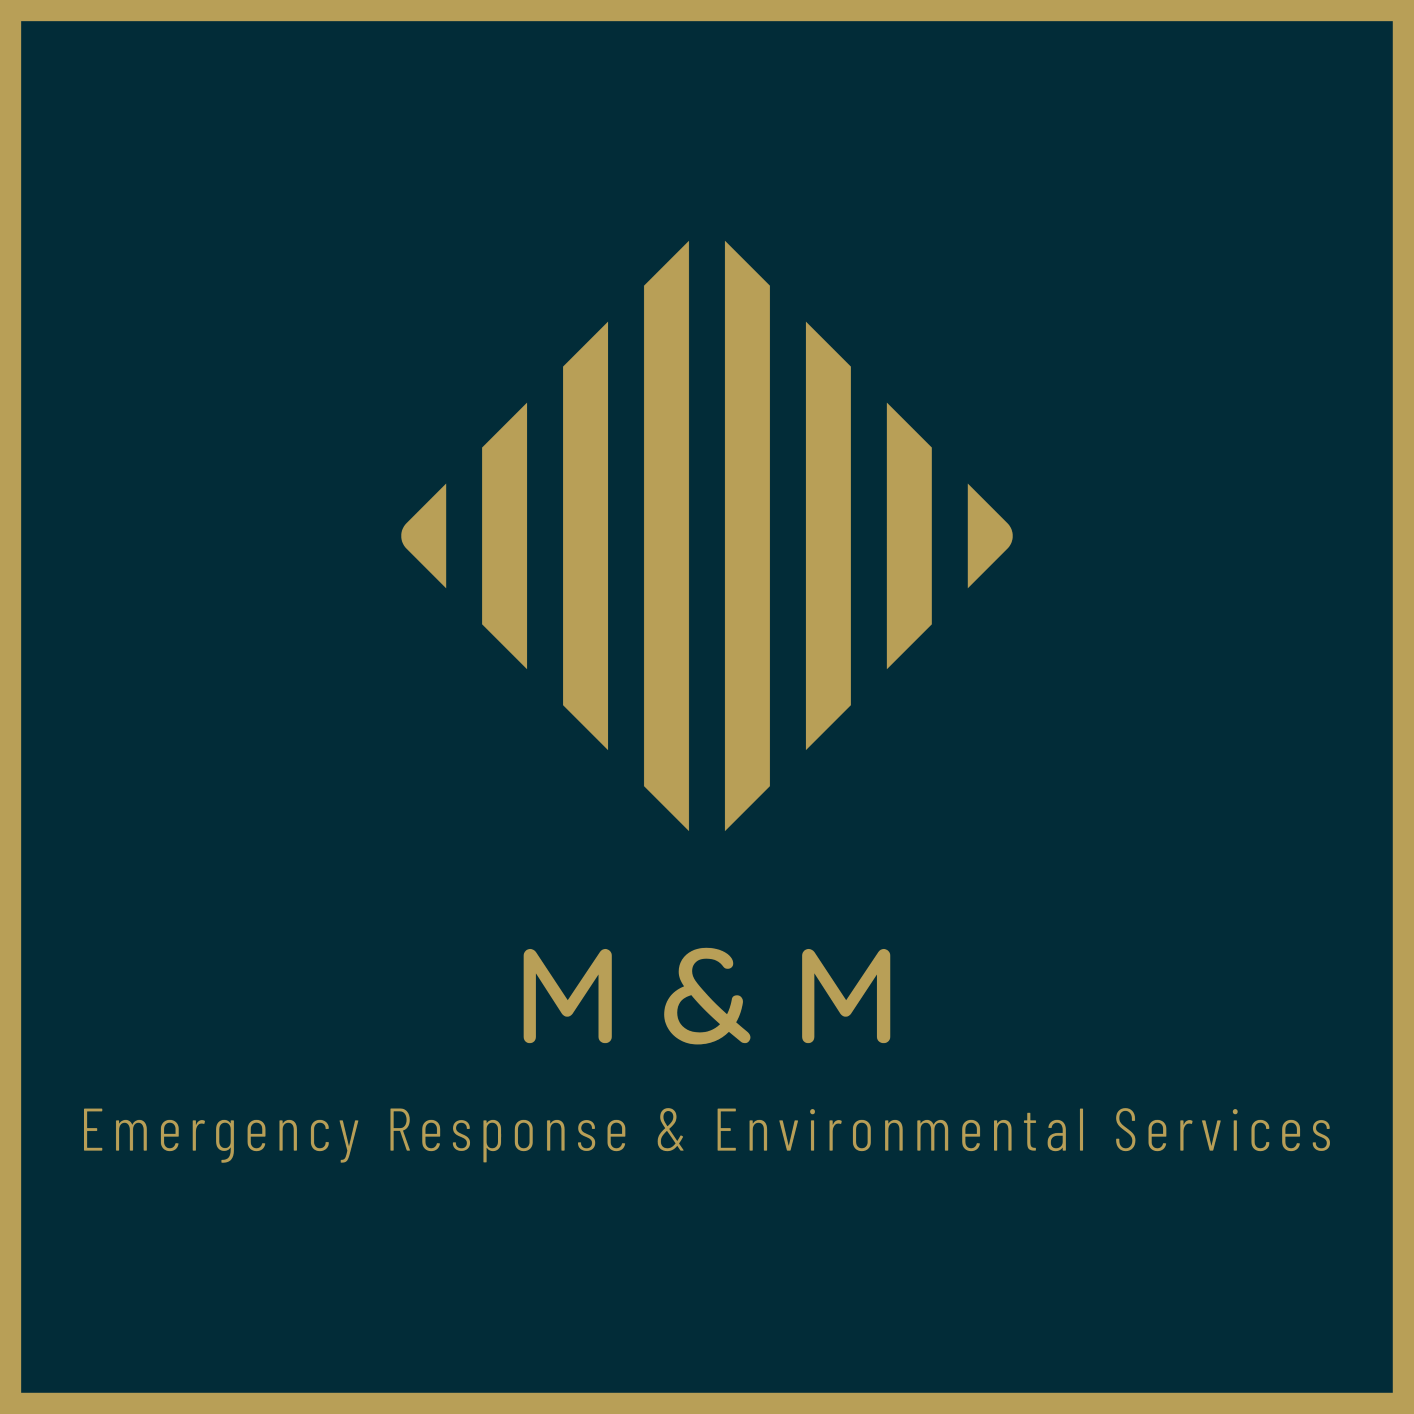 M & M Emergency Response and Environmental Services